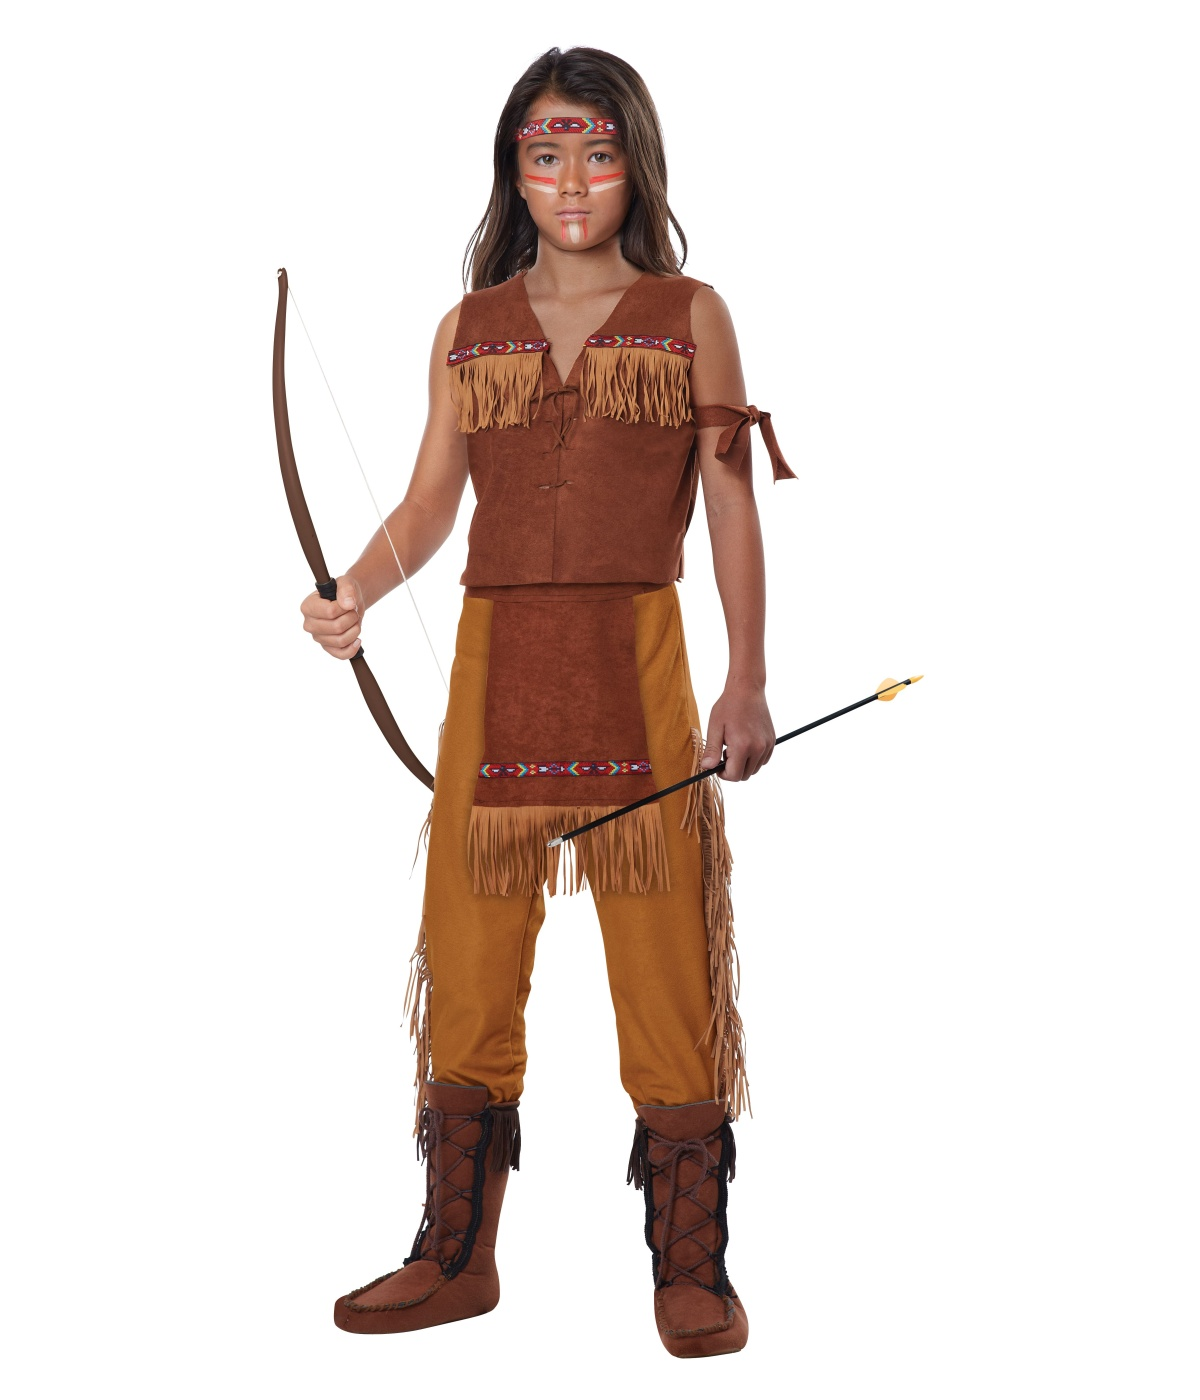 Costumes     Boys Costume     Classic Native American Boys CostumeNative American Boy Costume